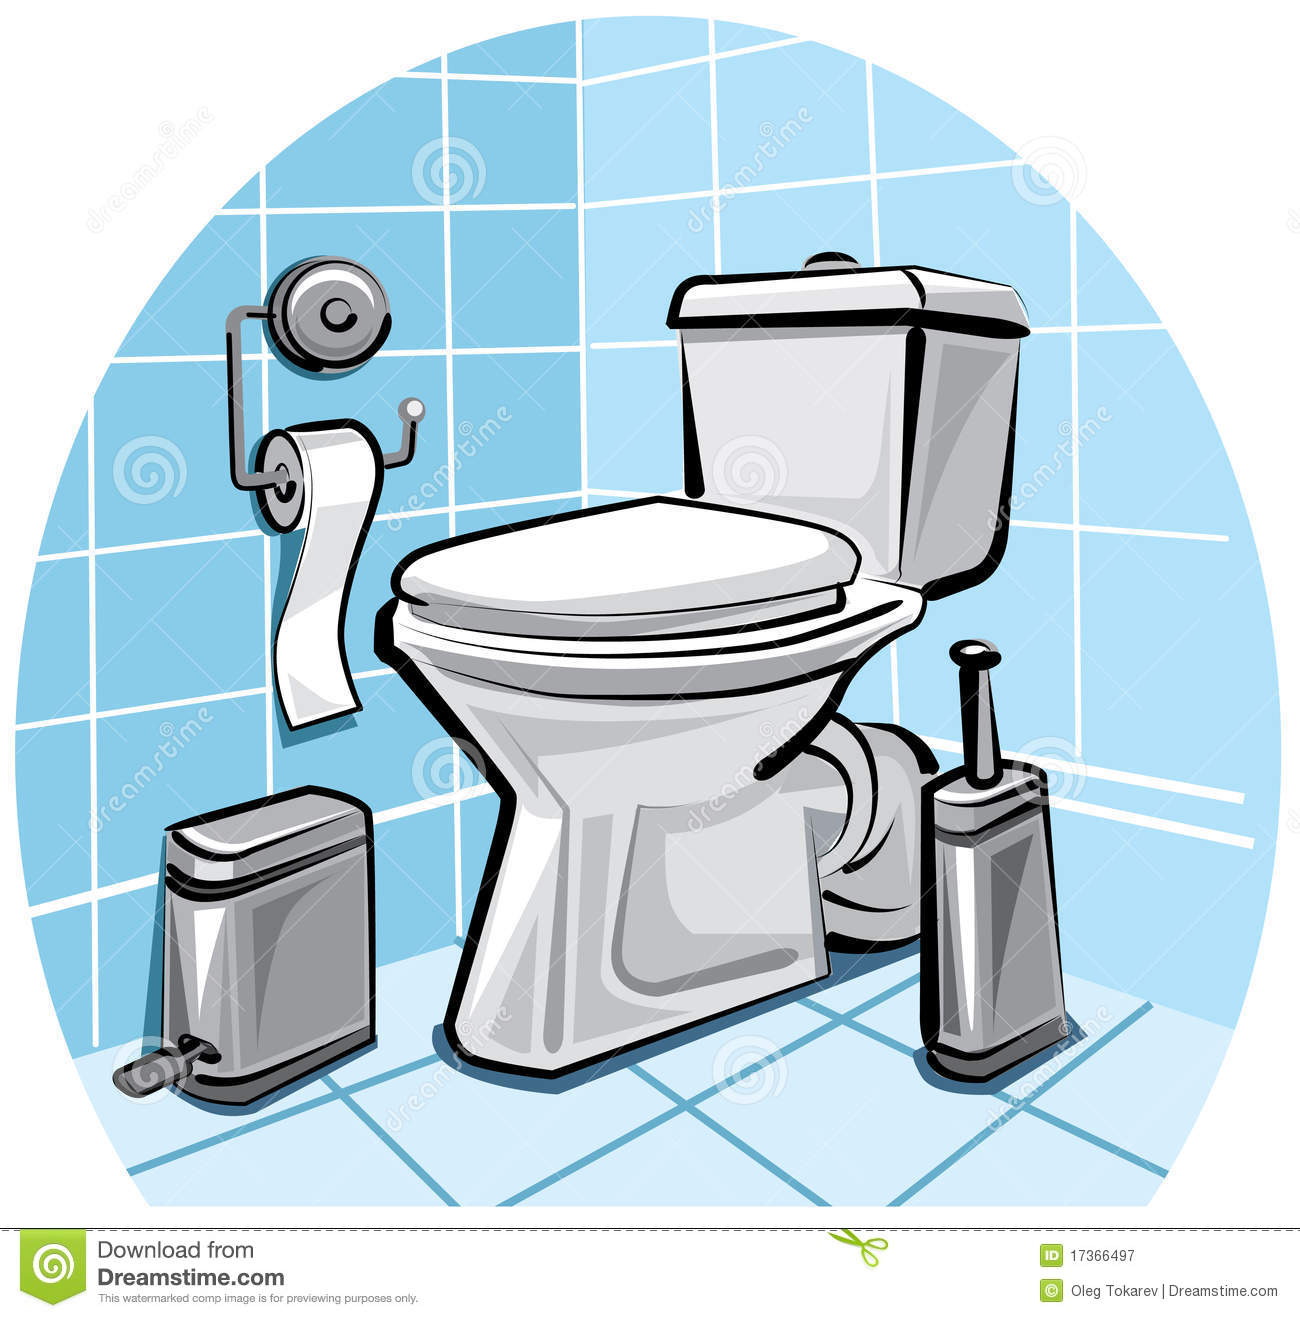 Bathroom Clipart Design Inspiration 6014230 Bathroom.